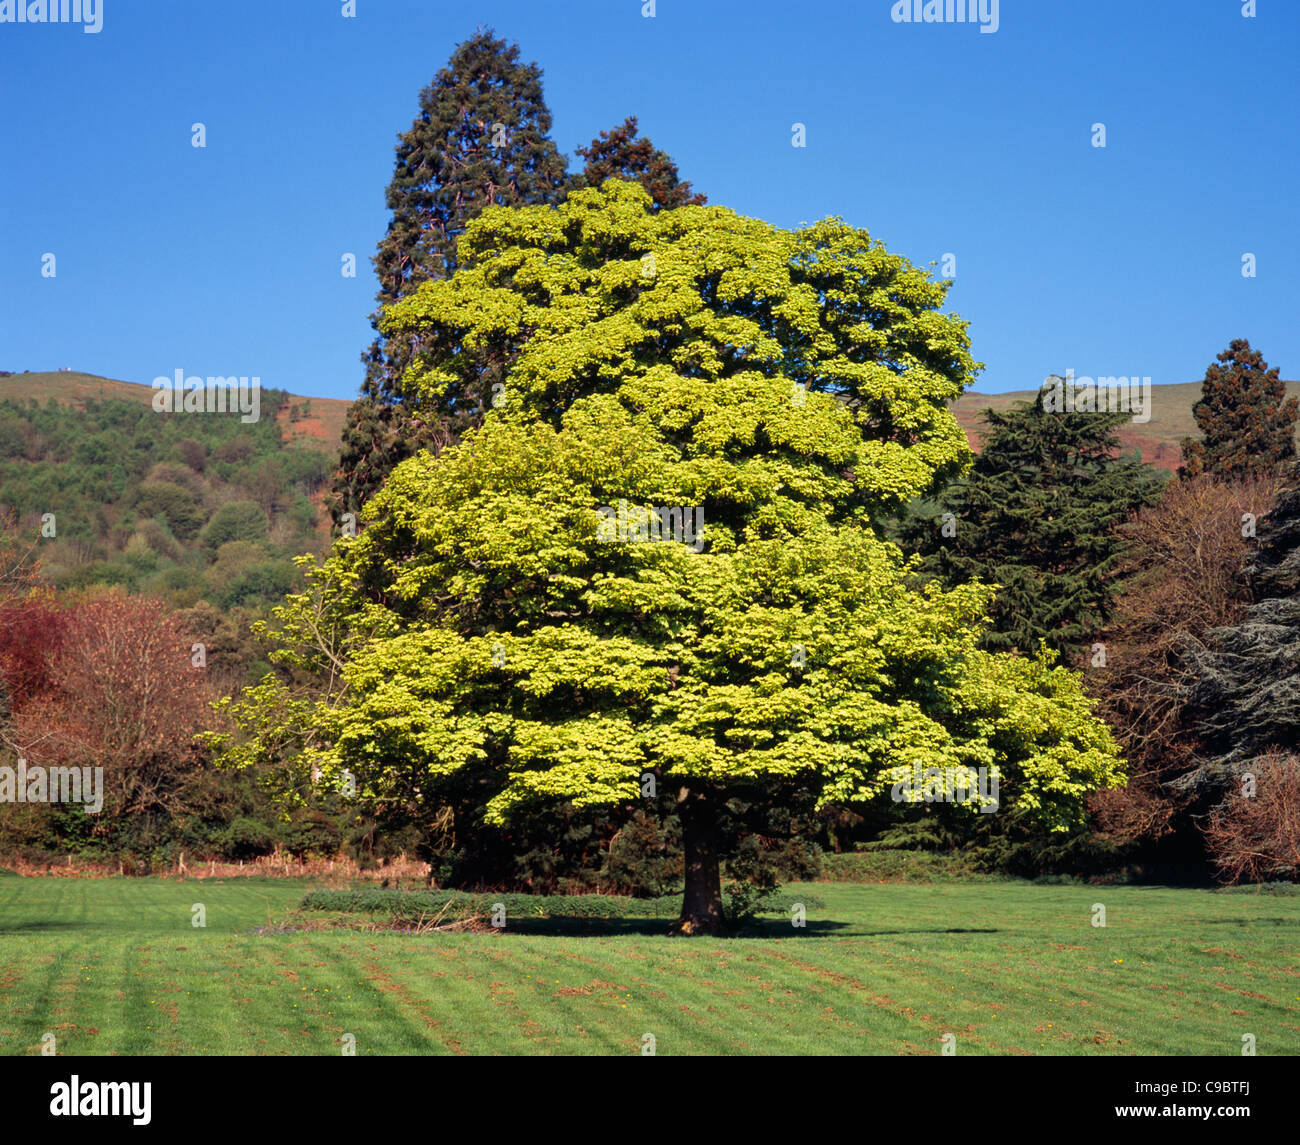 England Worcestershire Trees Sycamore Acer Pseudoplatanus Stock